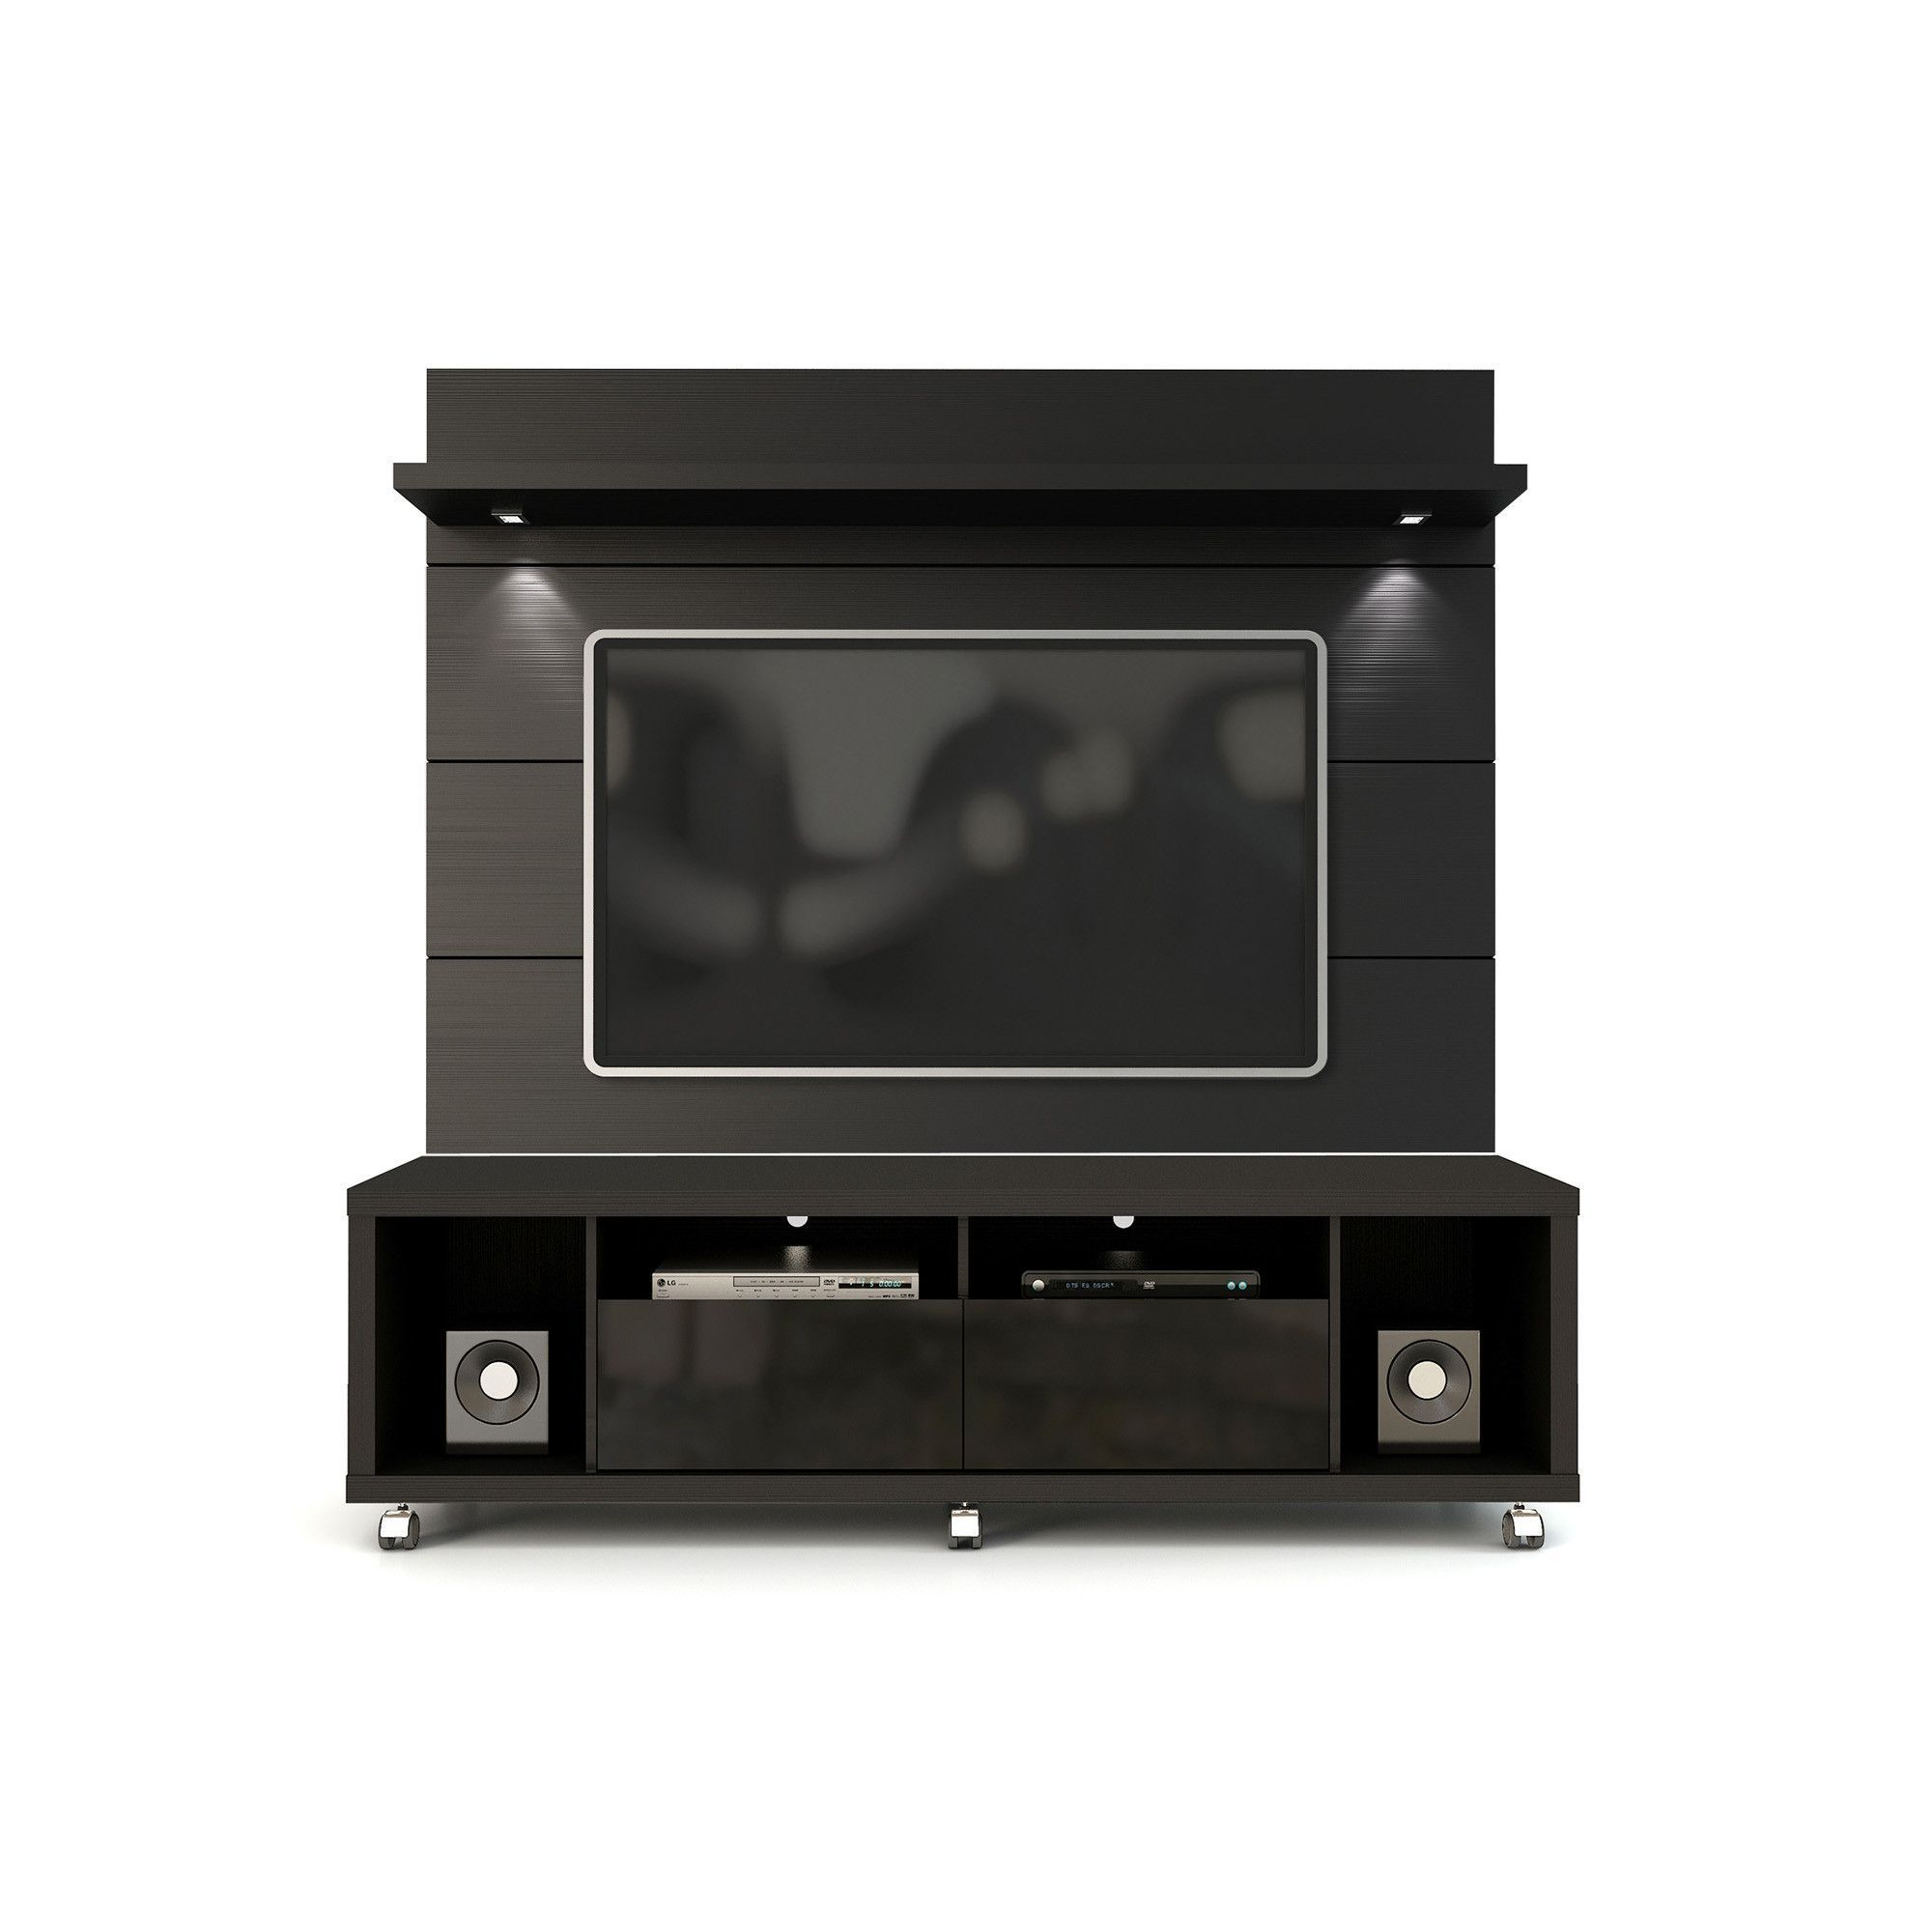 Aghasi Tv Stand For Tvs Up To 78 En 2021 Muebles Centro De Entretenimiento Muebles De Entretenimiento Centro De Entretenimiento